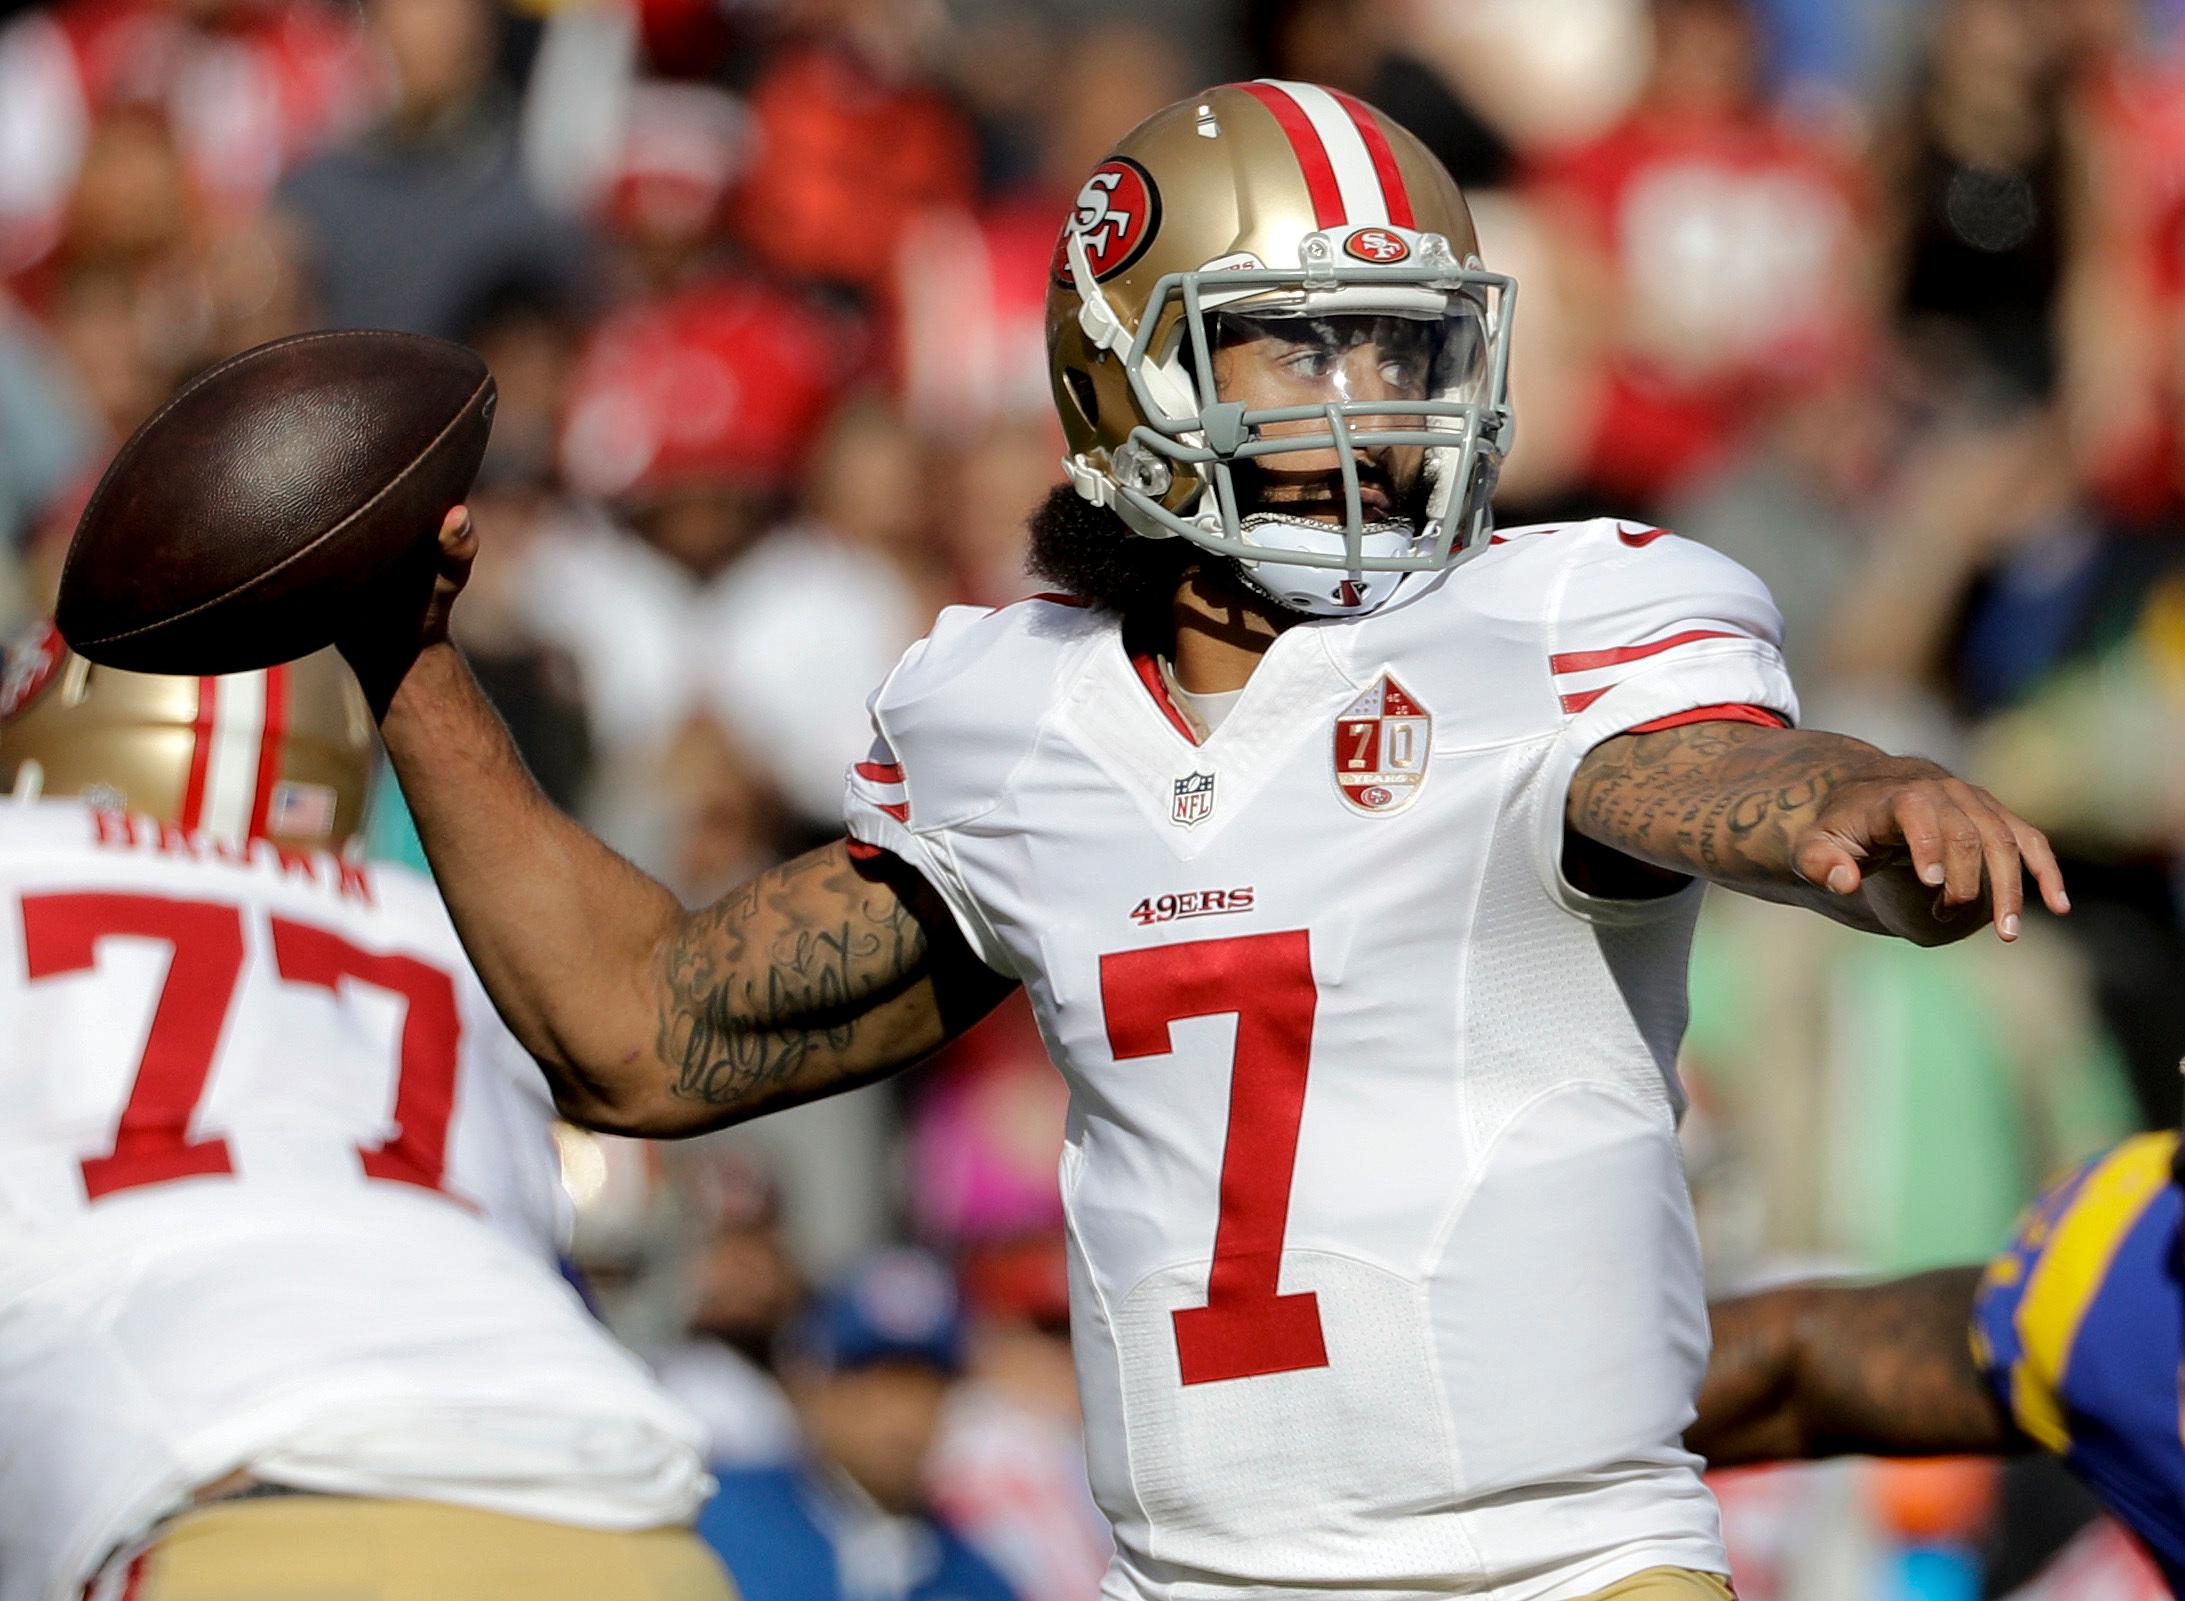 San Francisco 49ers quarterback Colin Kaepernick passes against the Los Angeles Rams during the first half of an NFL football game Saturday, Dec. 24, 2016, in Los Angeles. (AP Photo/Jae C. Hong)